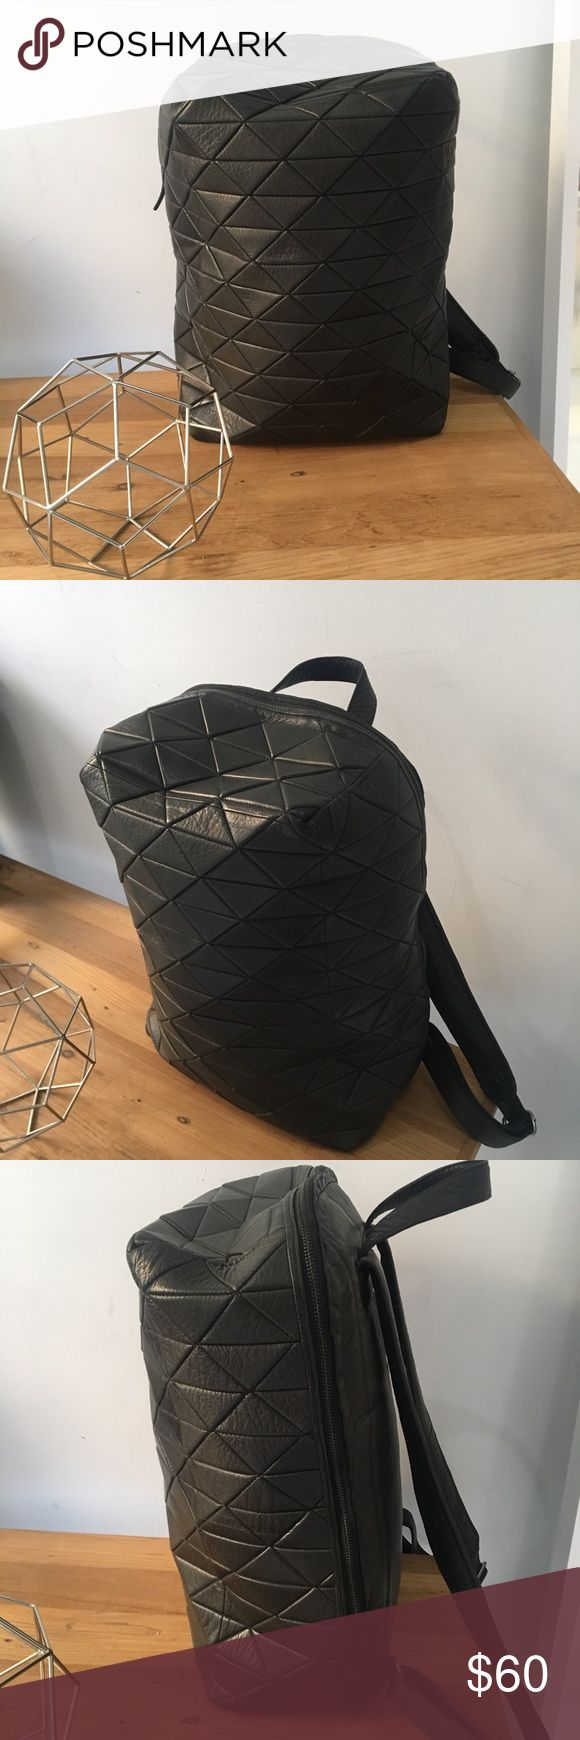 Still Nordic Cubic Brick Backpack Genuine leather backpack, incredible quality at a low price. Adjustable straps with multiple interior organizational pockets. Still Nordic Bags Backpacks